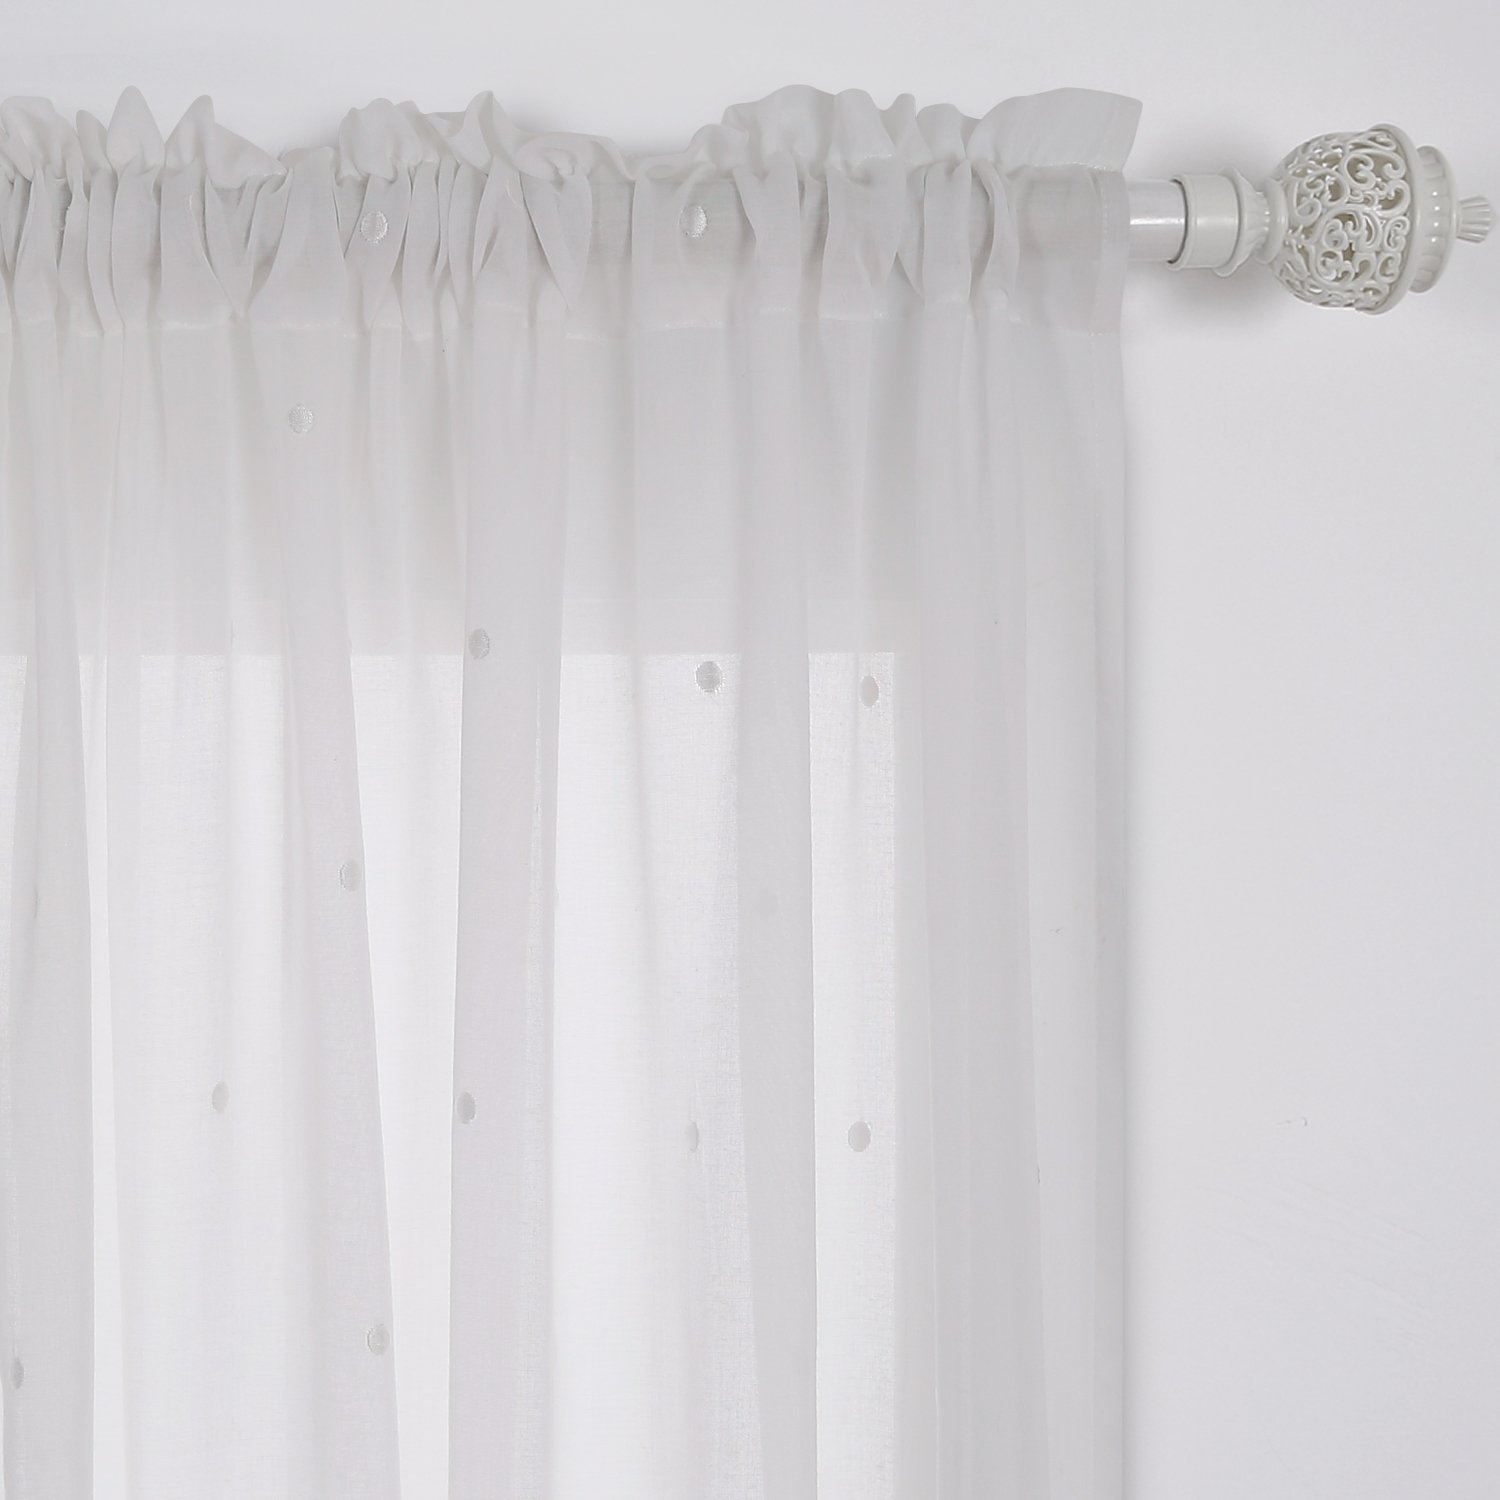 Deconovo Curtains Embroidered White Dot Curtains Faux India Cotton White Rod Pocket Curtains 52W x 84L Inch White 1 Pair